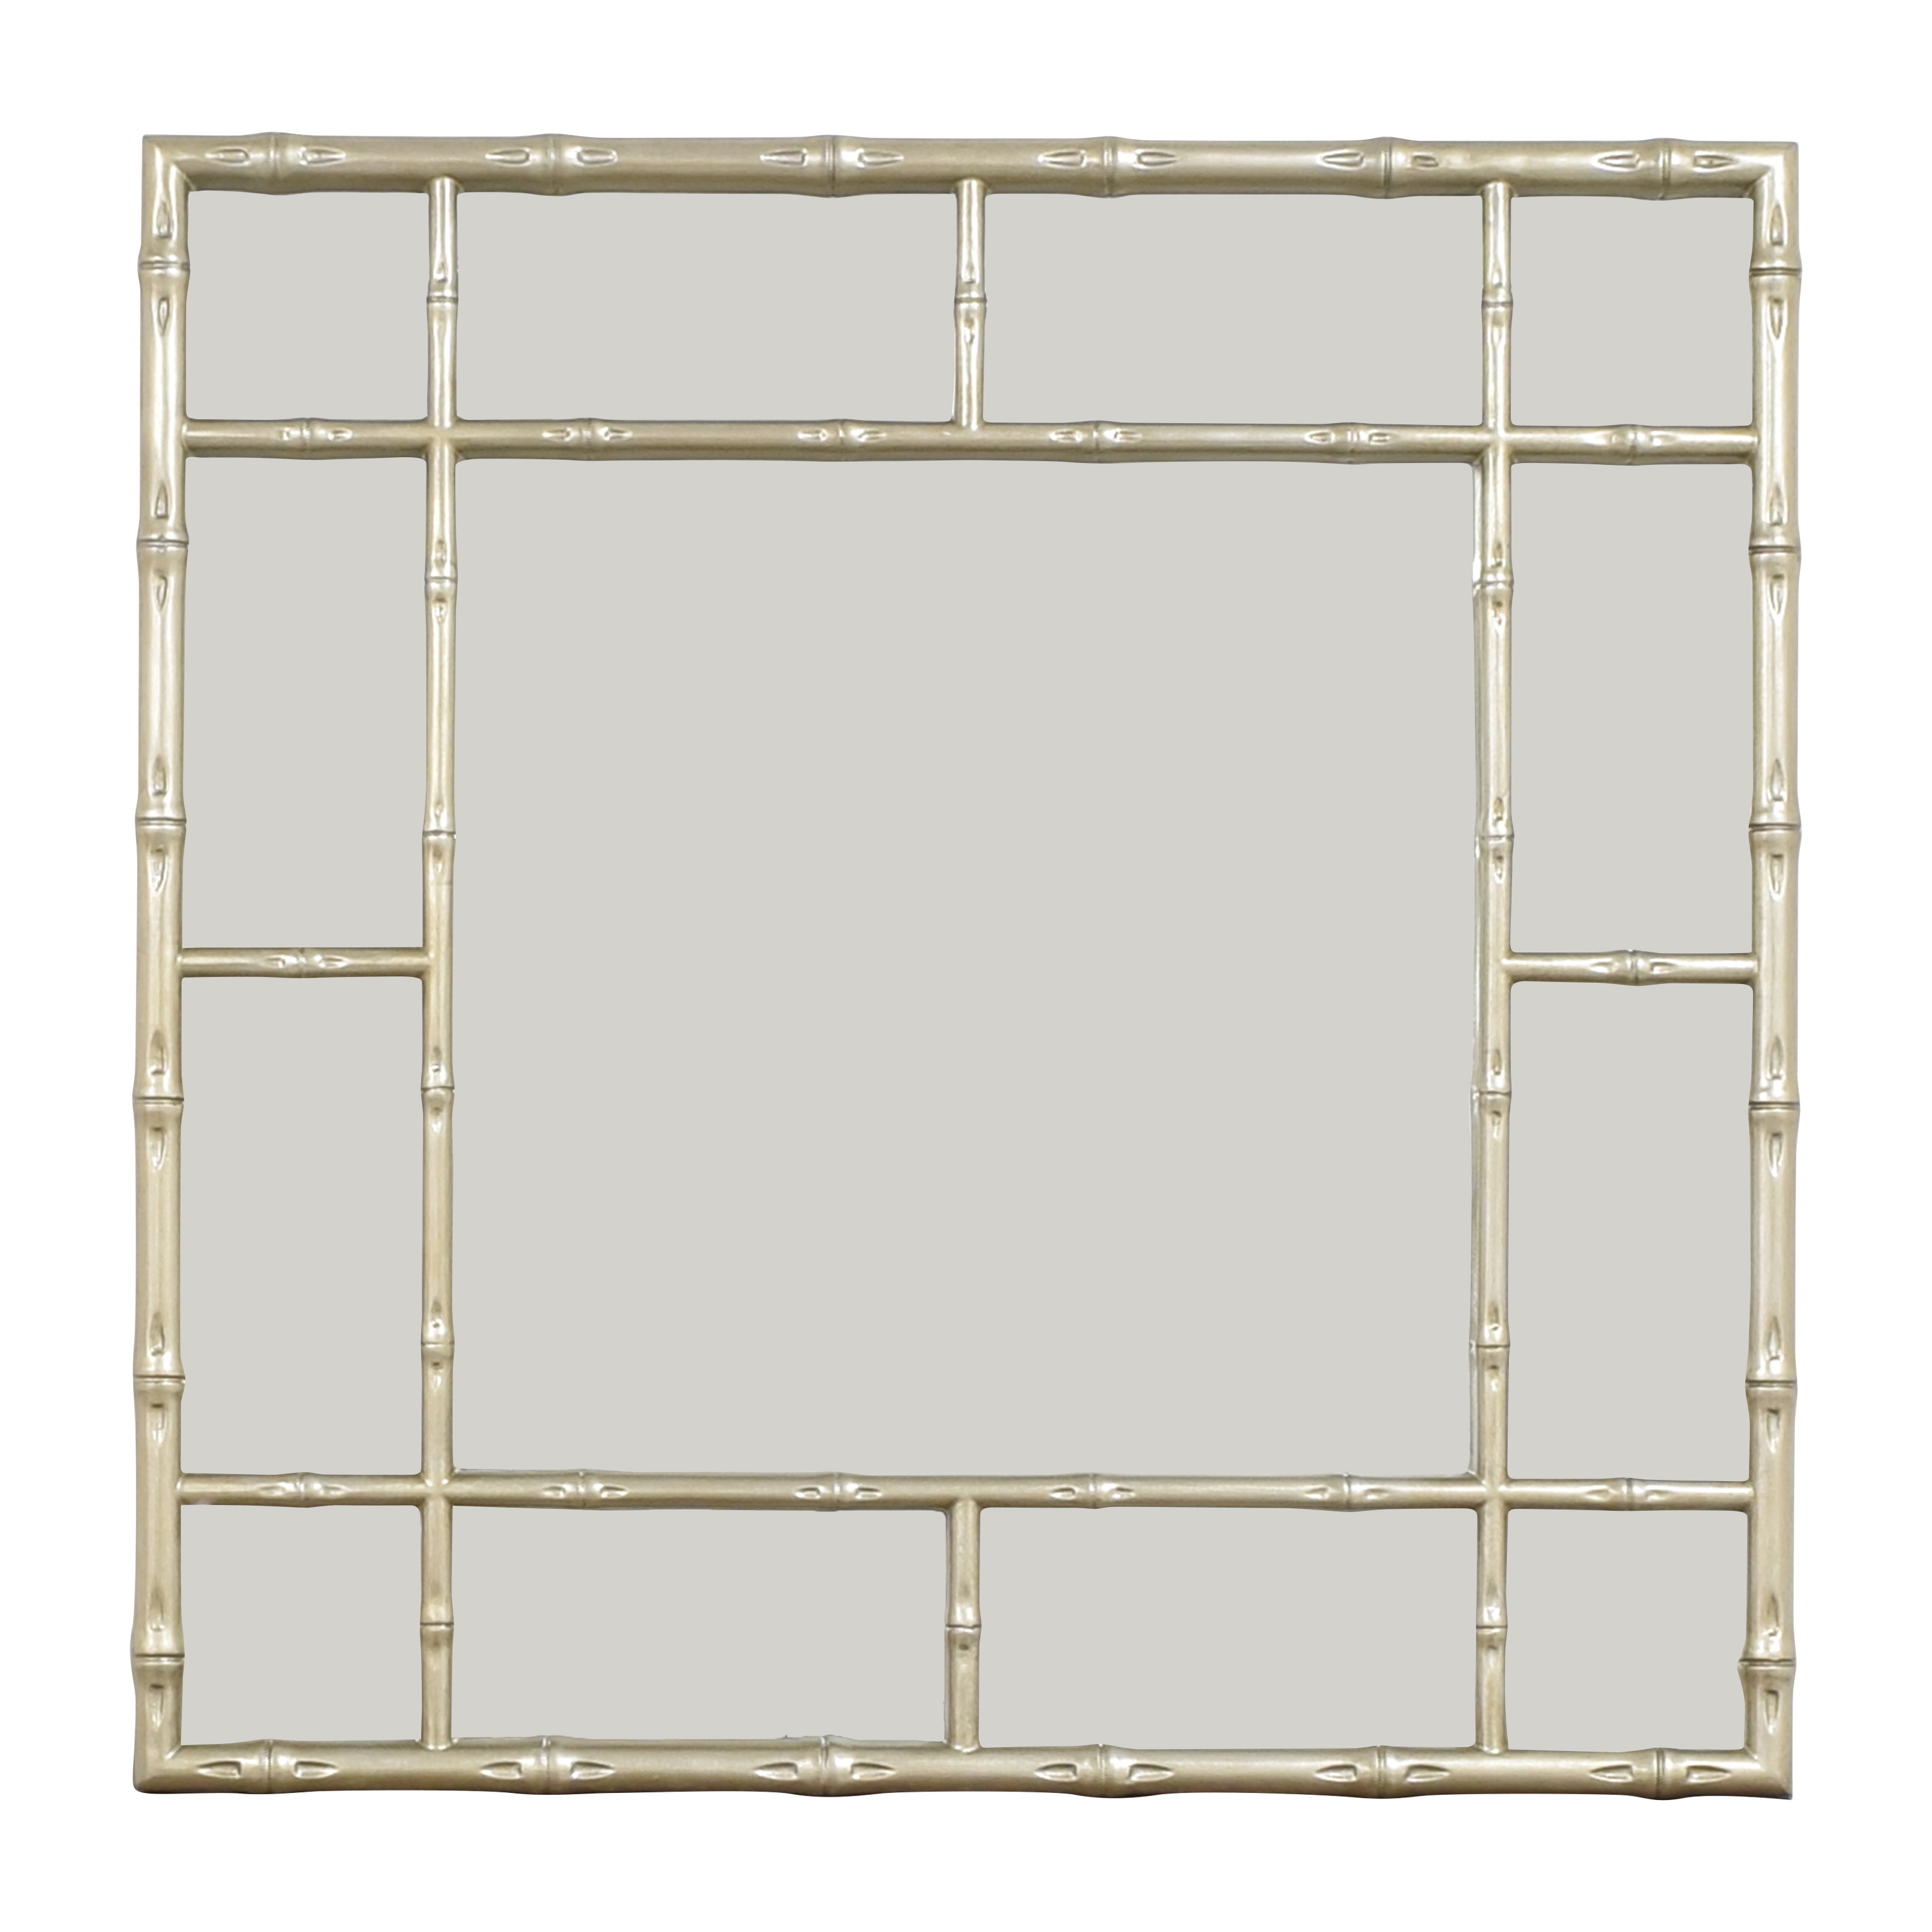 Howard Elliott Collection Howard Elliott Collection Bamboo-Style Wall Mirror ct